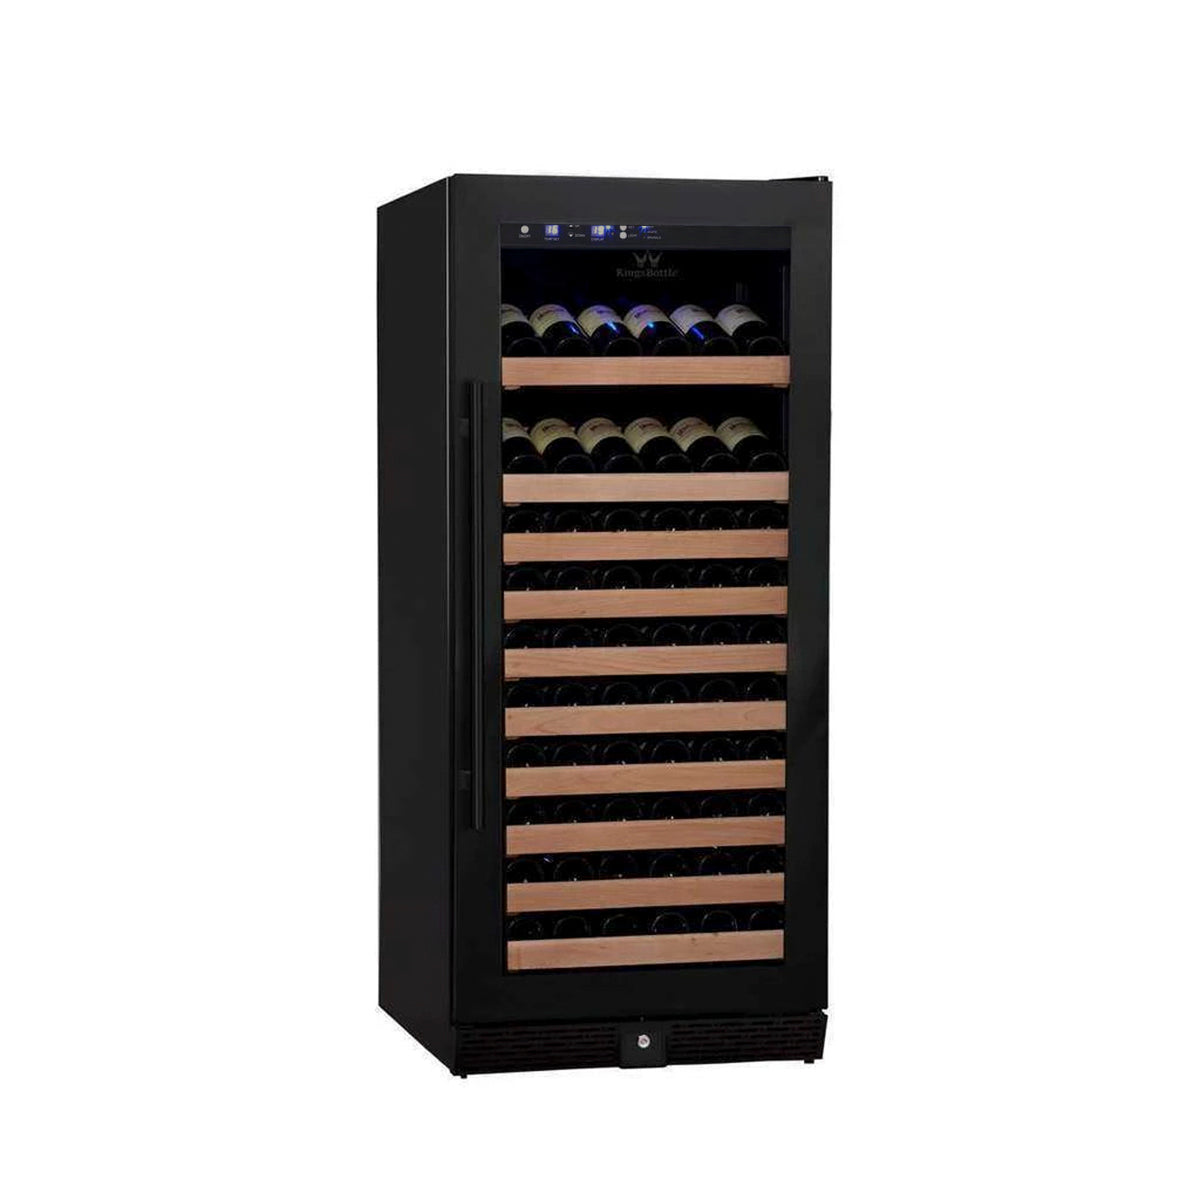 100 Bottle Kitchen Wine Refrigerator Freestanding